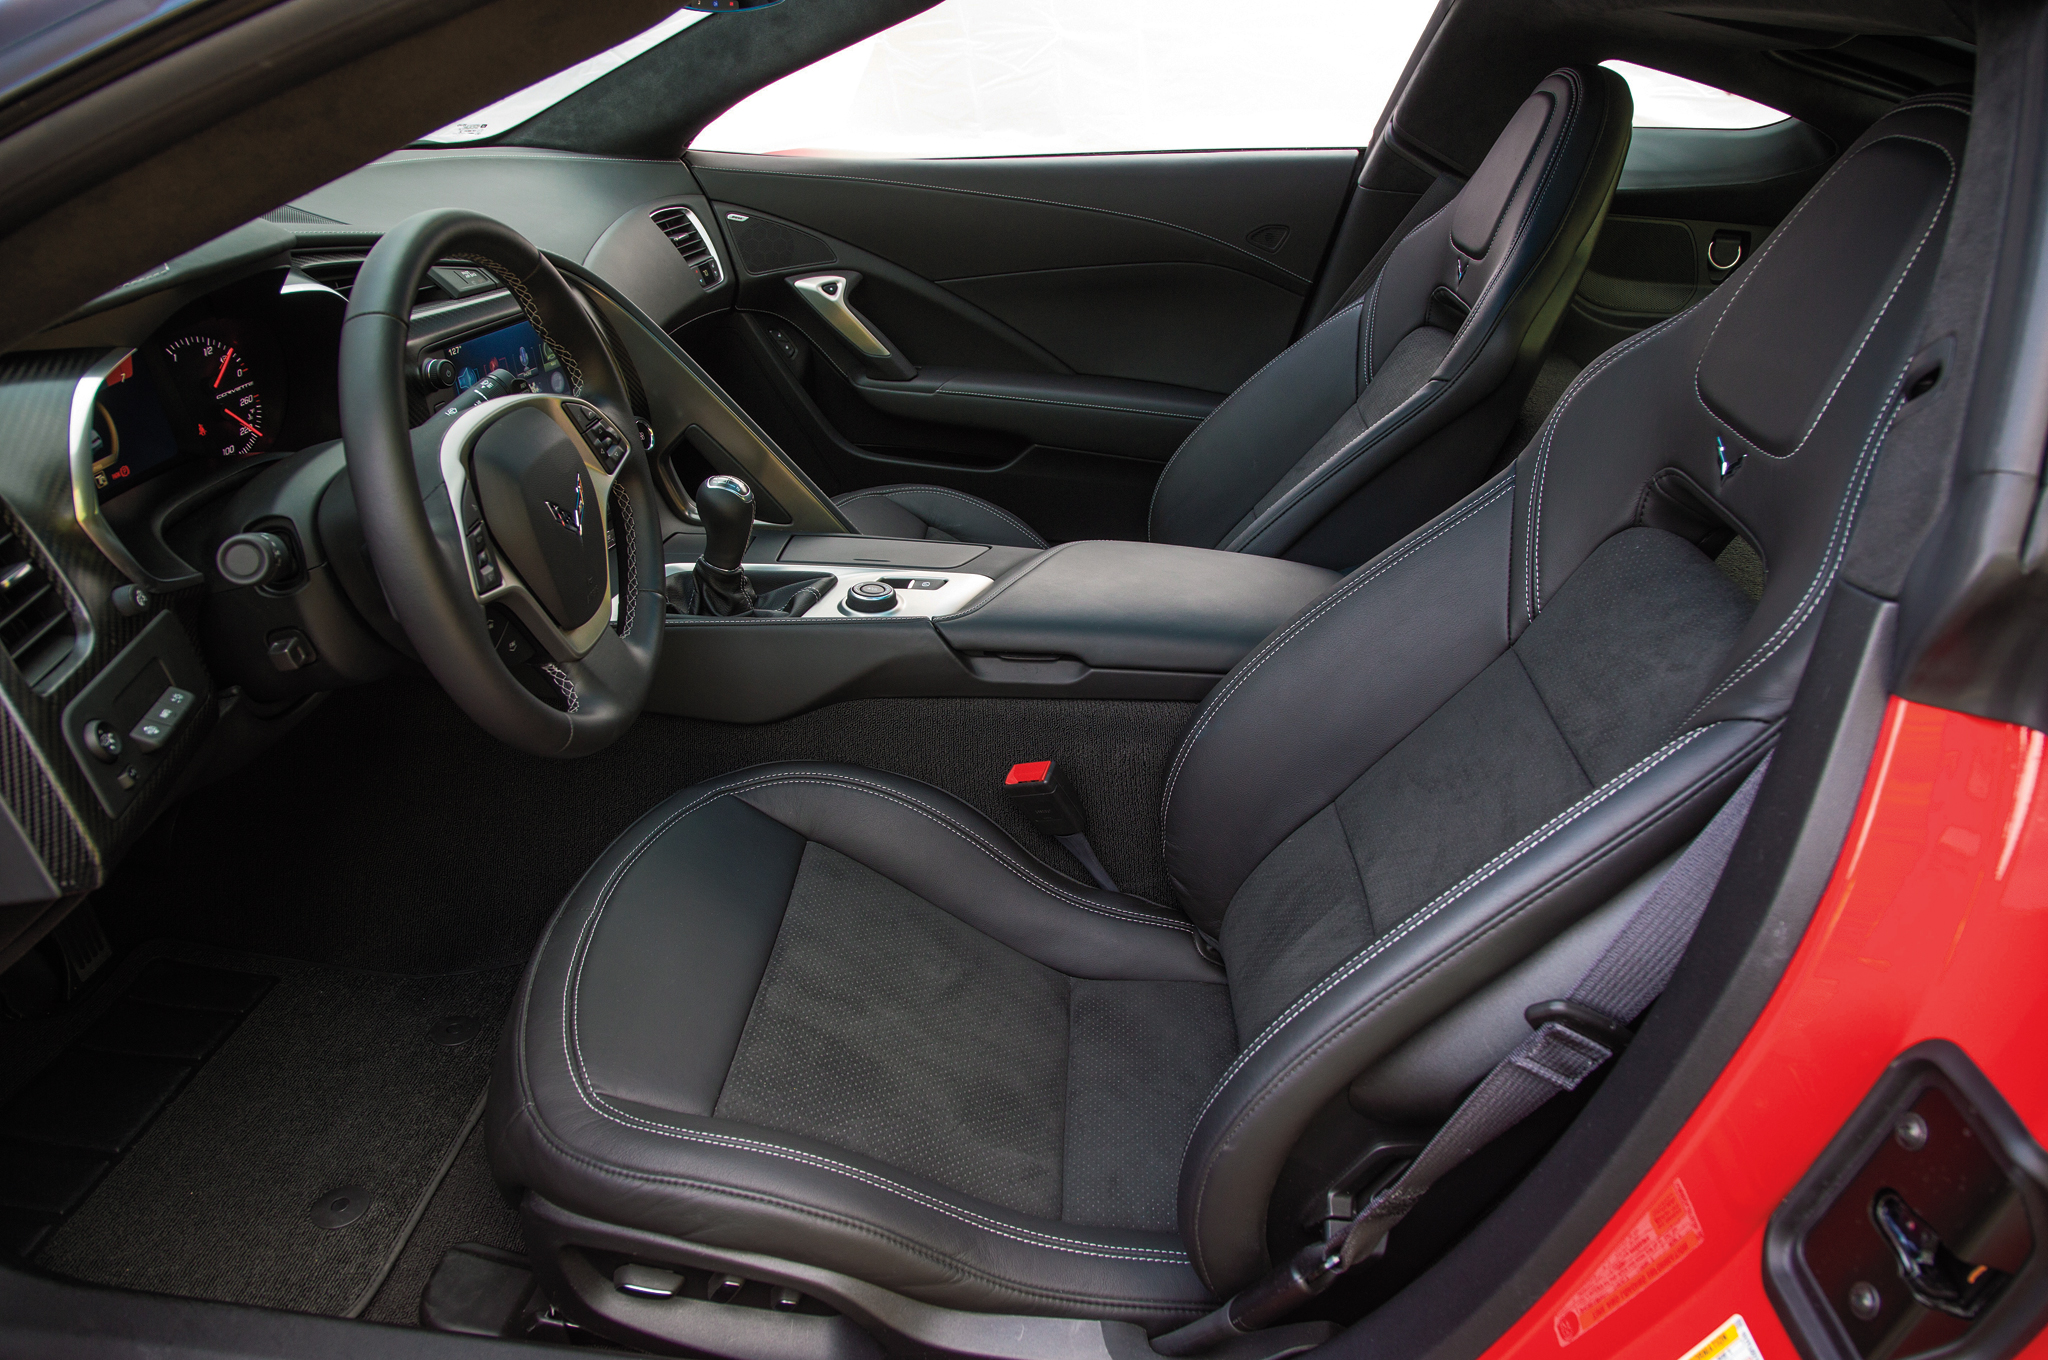 2014 Chevrolet Corvette Stingray Z51 Front Seats Interior (Photo 4 of 7)